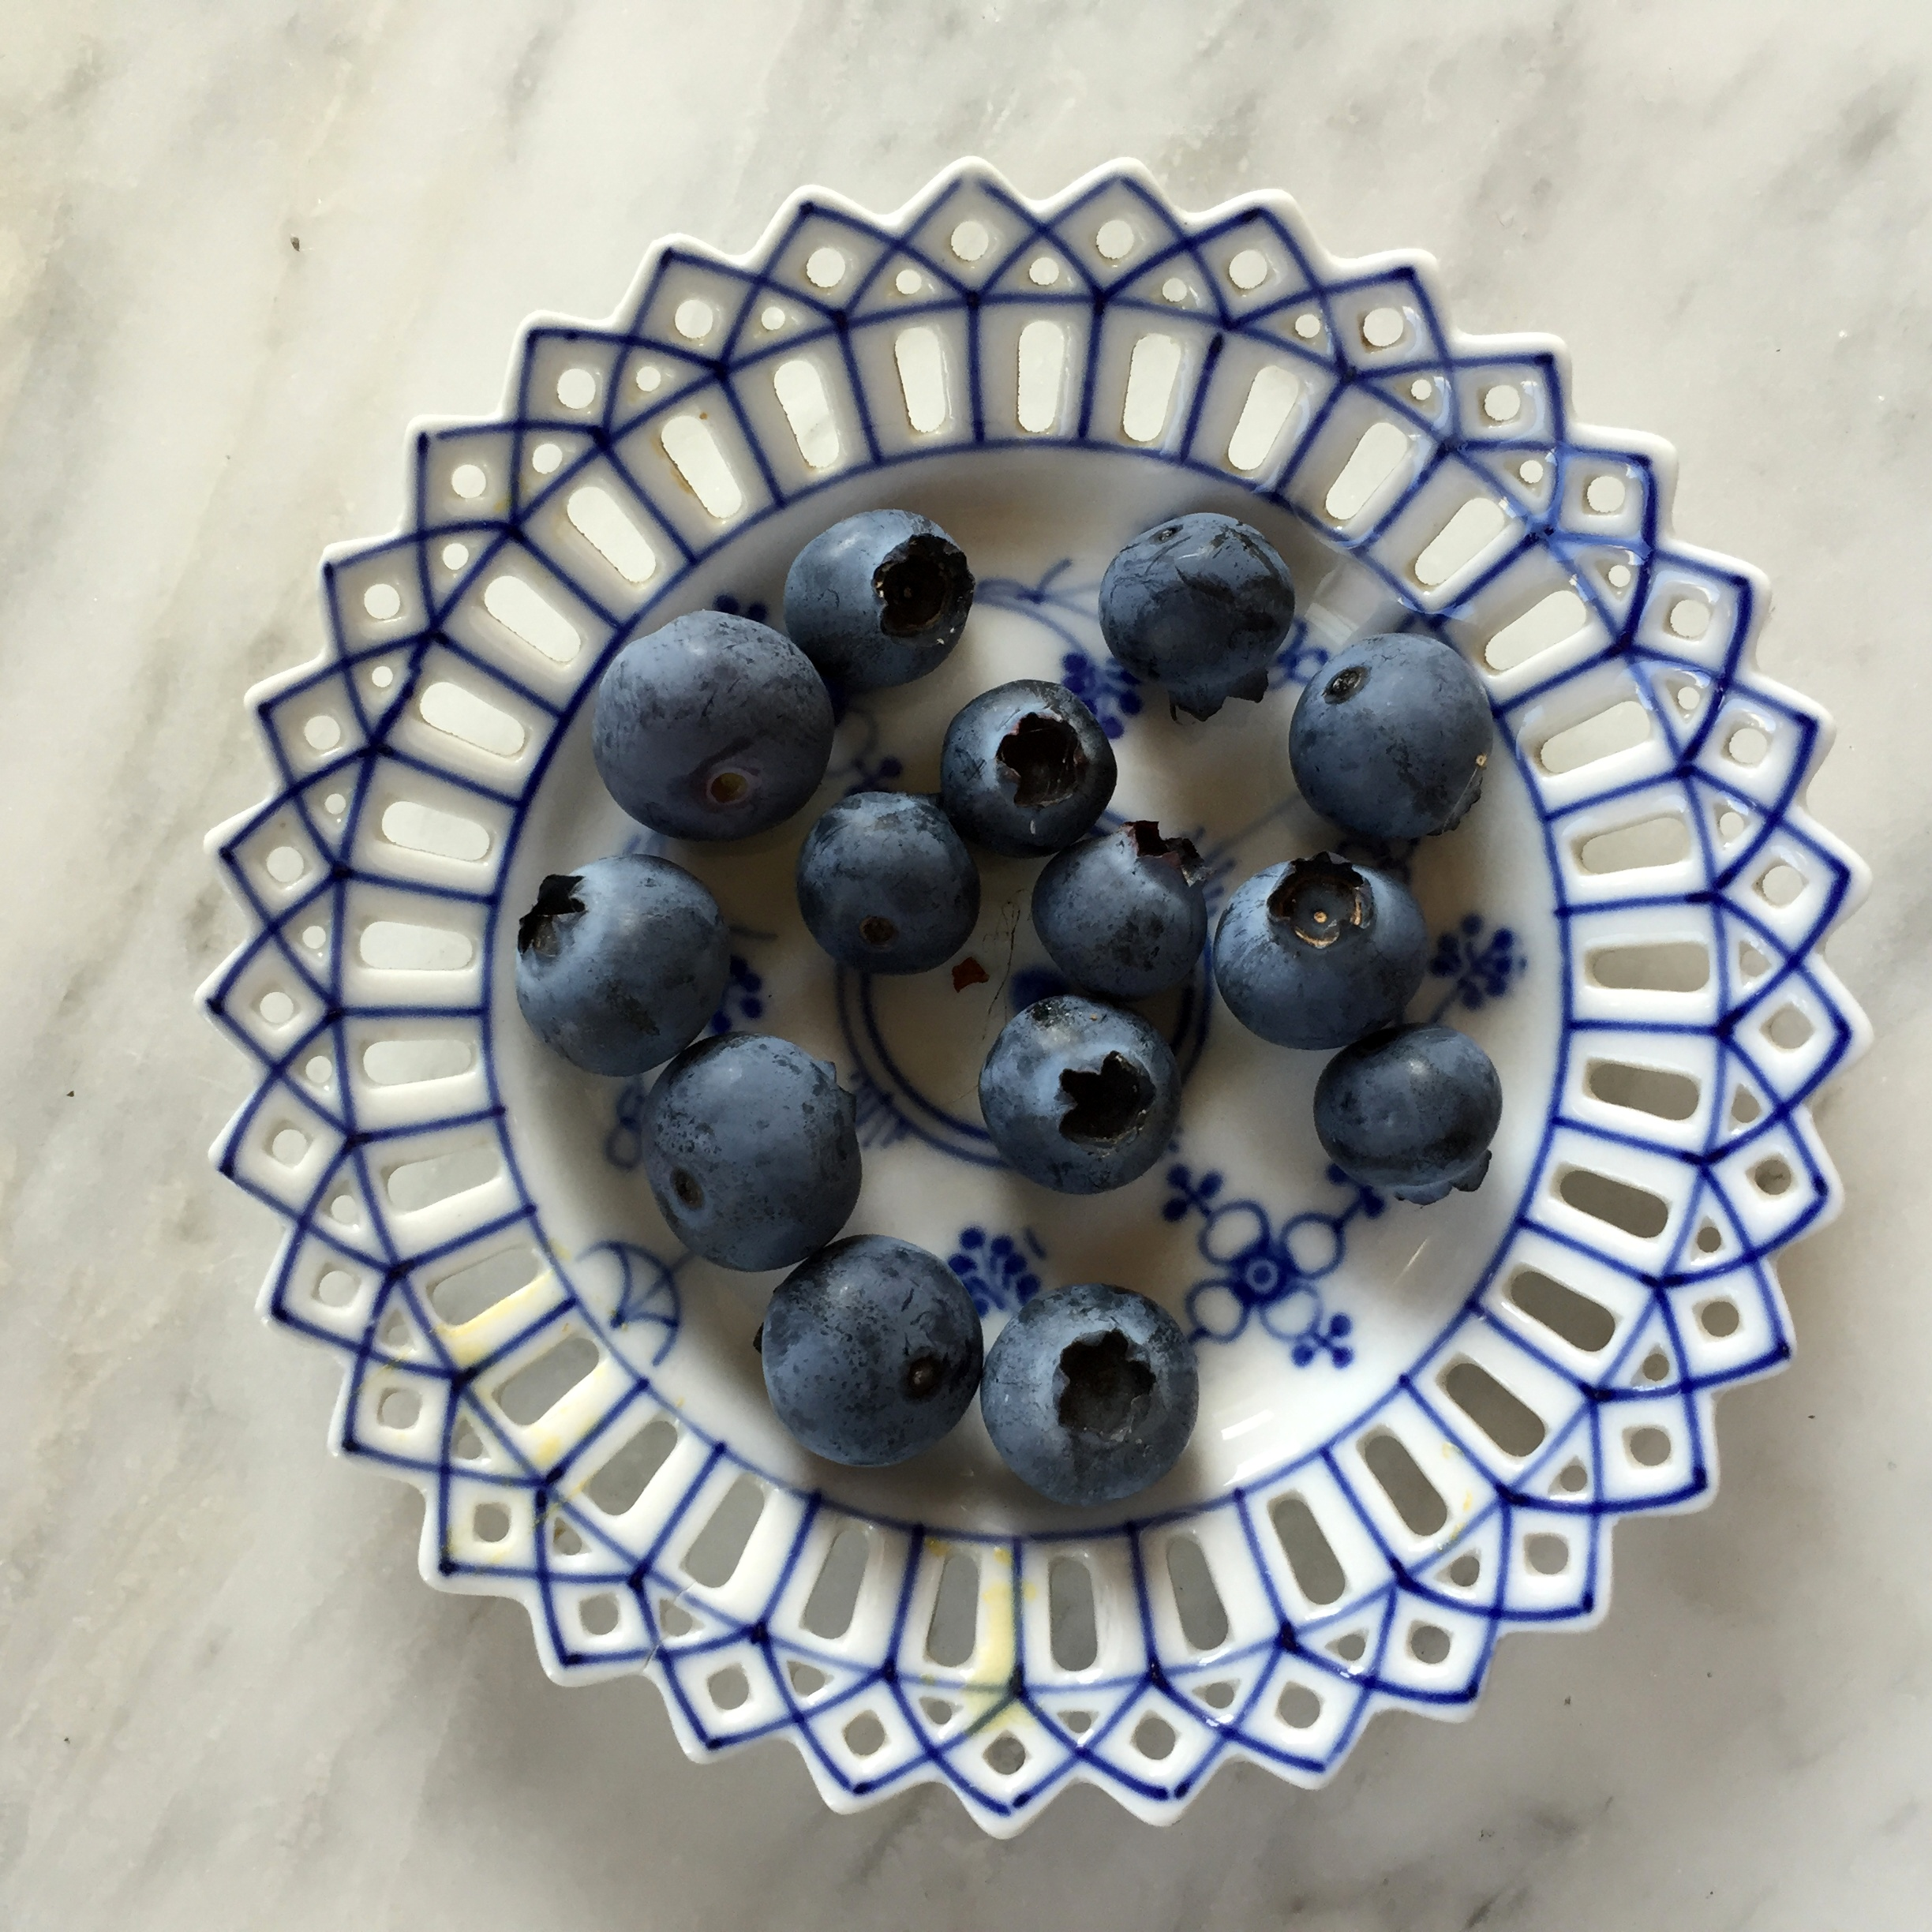 EG Blueberries 6-26-16 FS.JPG